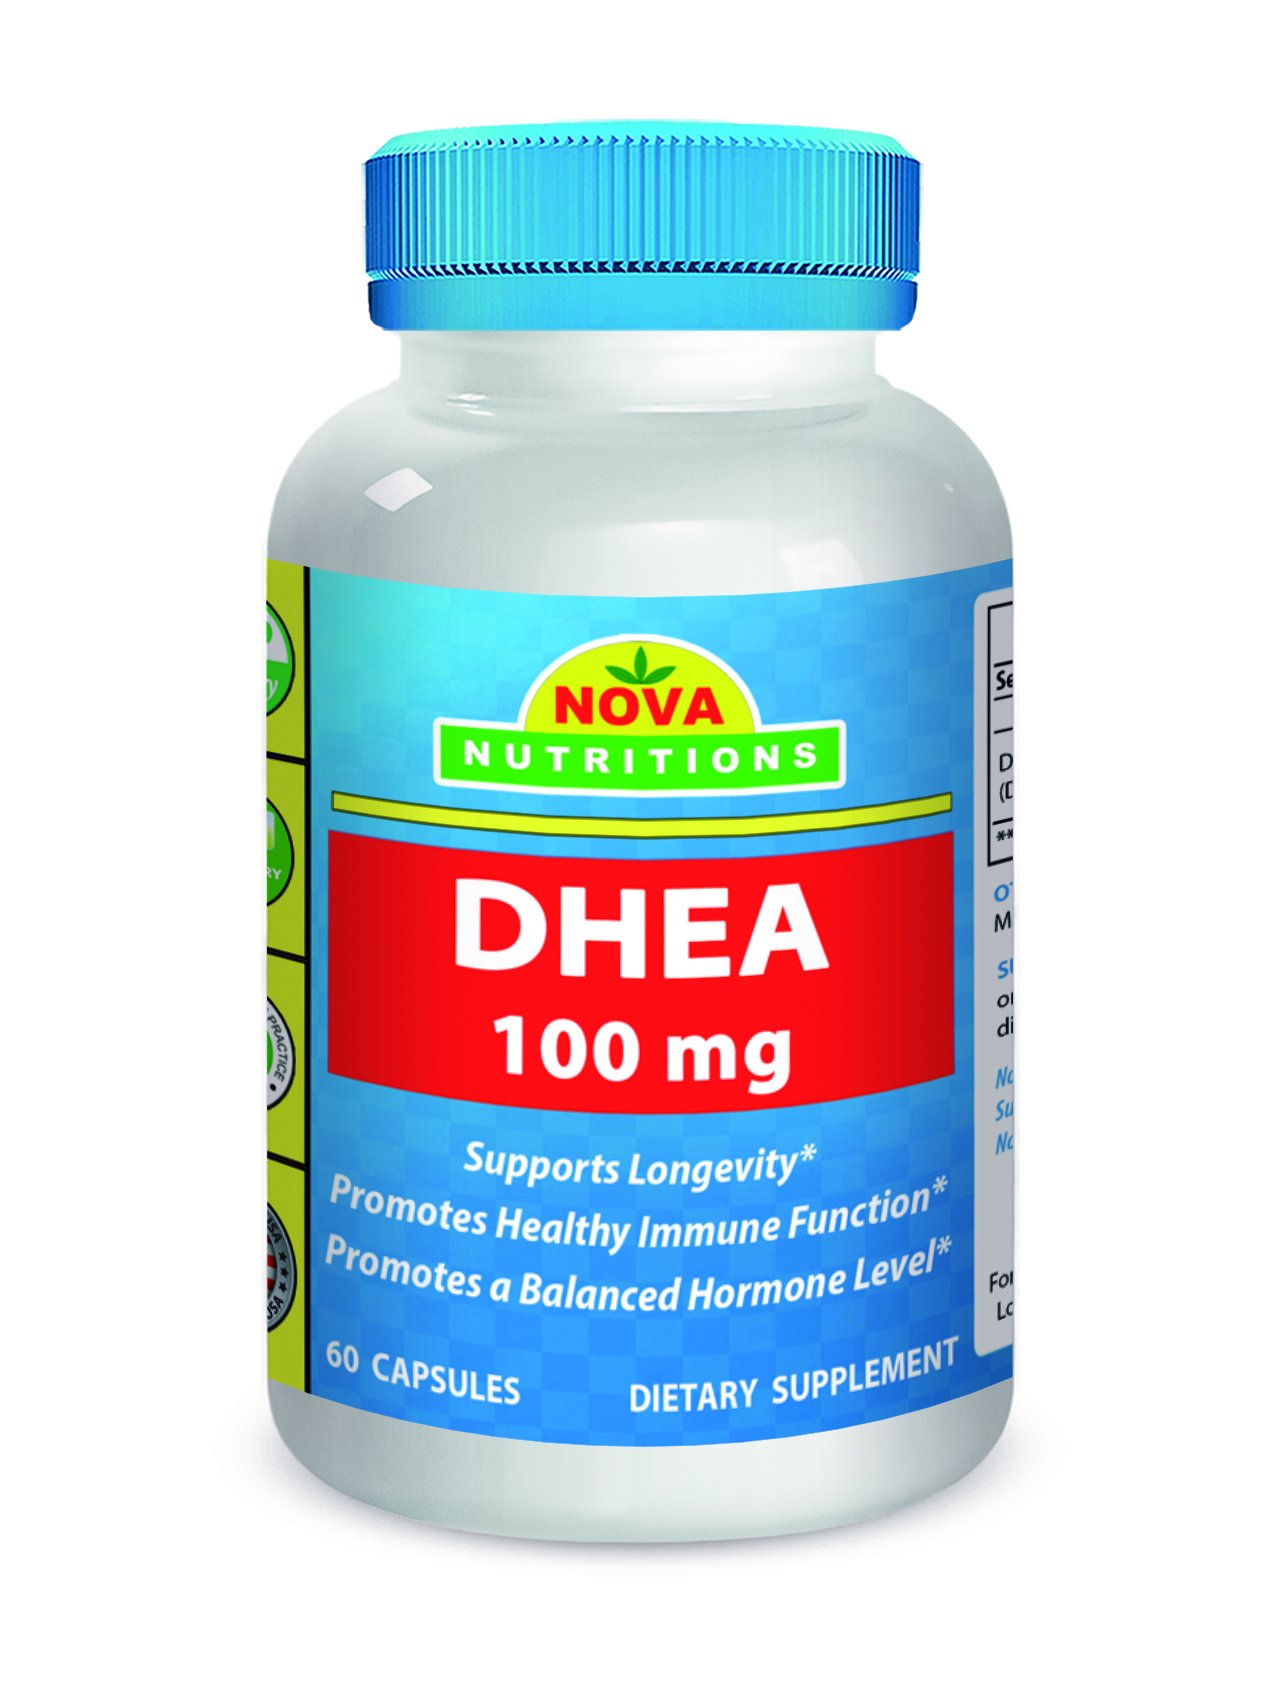 Nova Nutritions DHEA 100mg Supplement 60 Capsules - Supports Balanced Hormone Levels For Men & Women - Promotes Healthy Aging - Vegetarian Formula - USA Manufactured